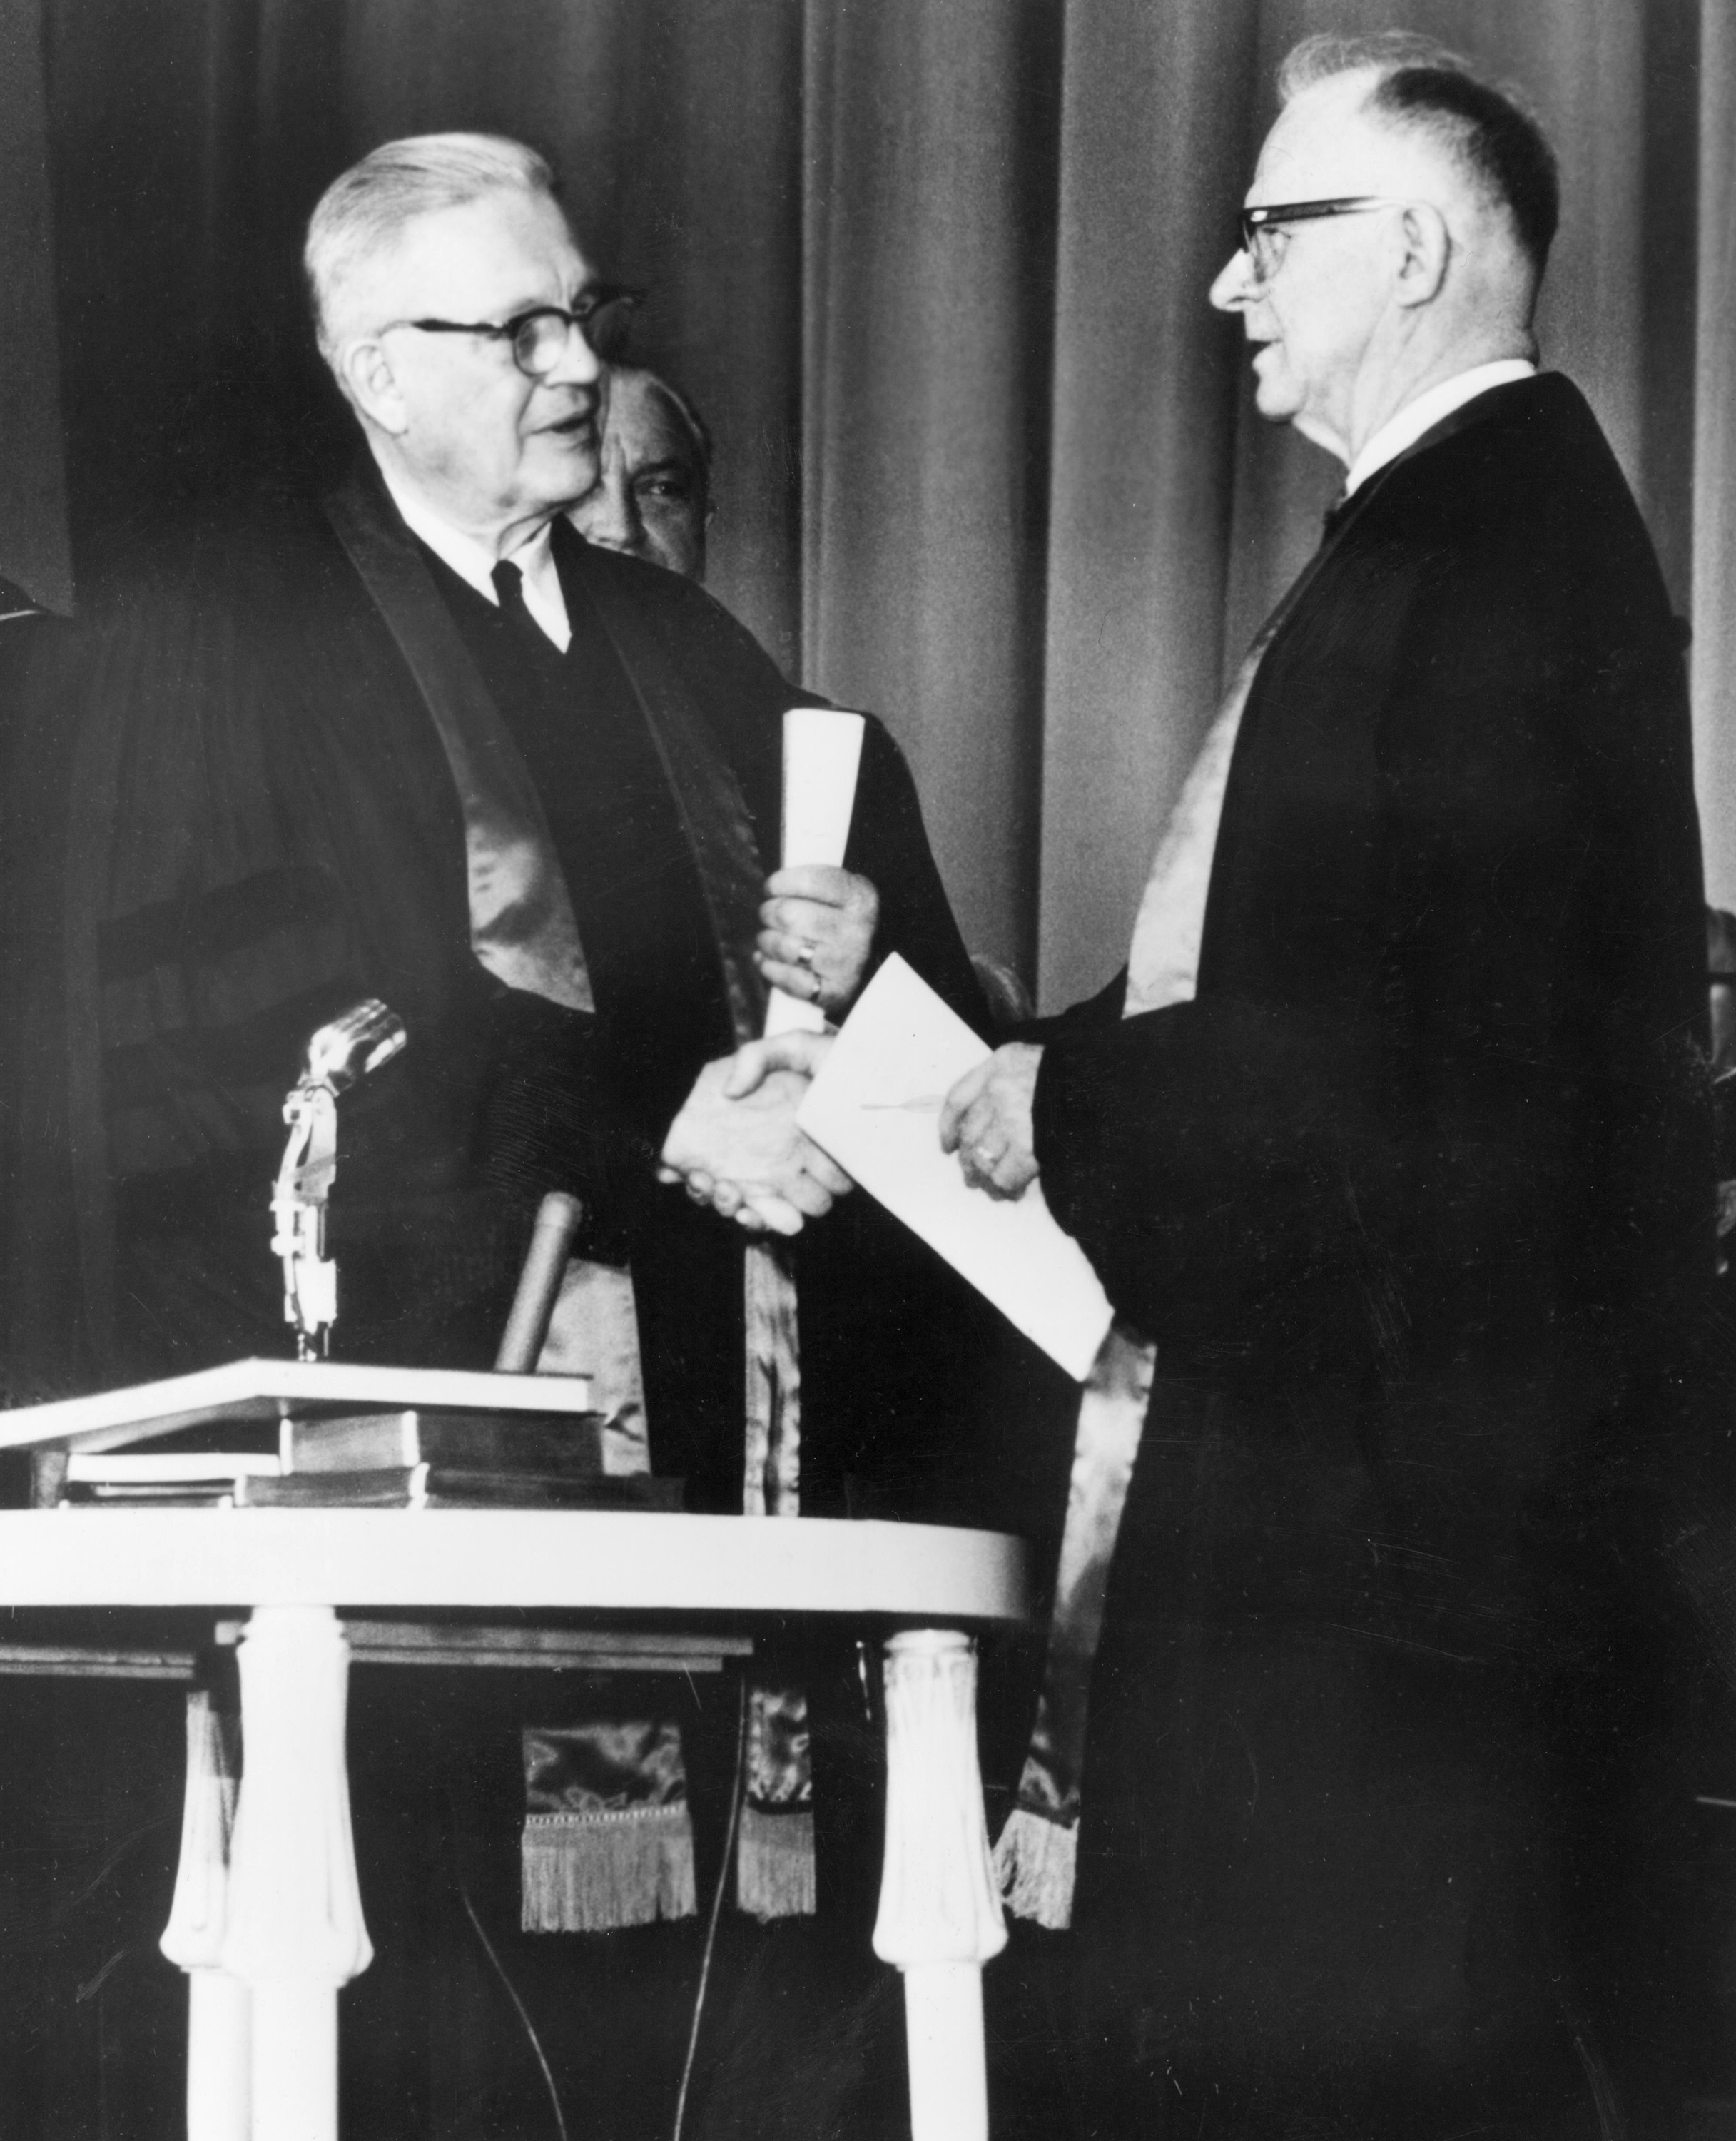 Evangelical United Brethren Church Bishop Reuben H. Mueller (left) and Methodist Bishop Lloyd C. Wicke join hands on April 23, 1968. Photo courtesy of the United Methodist Commission on Archives and History.